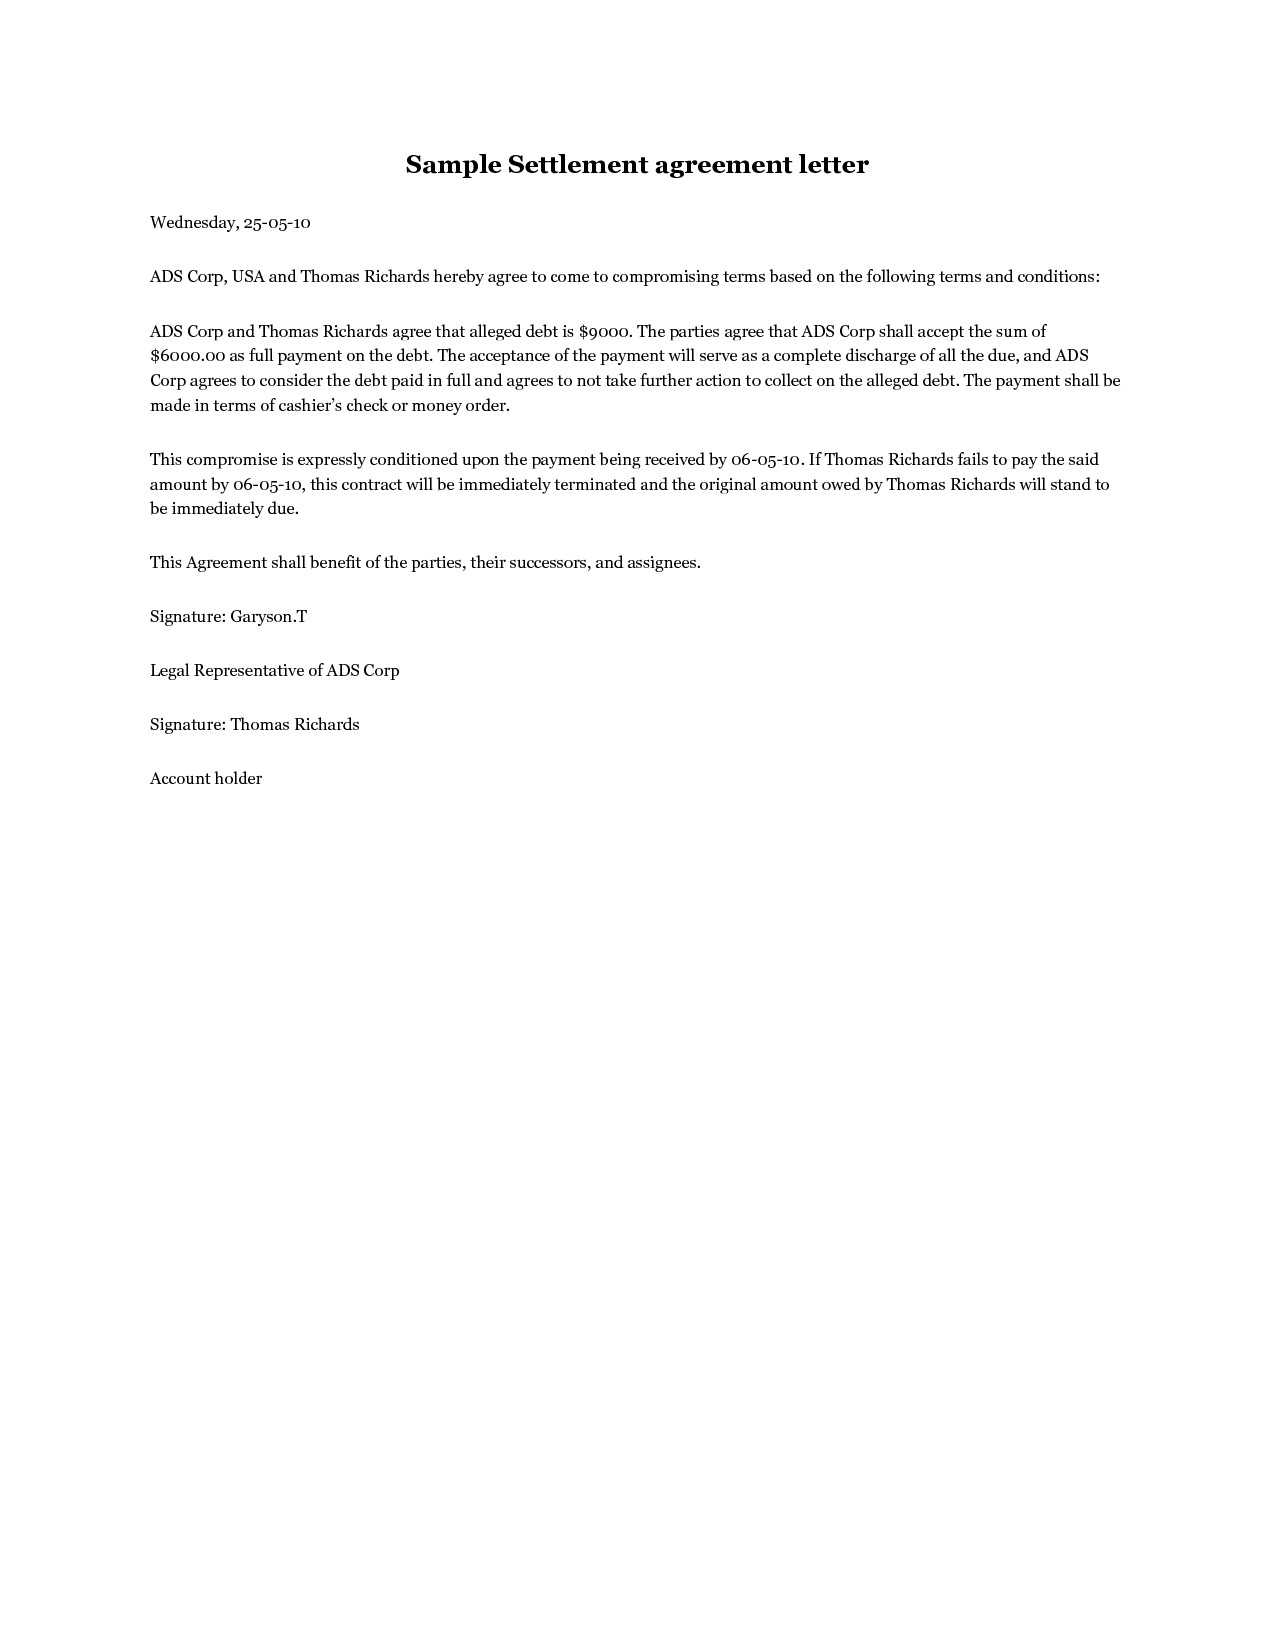 Repayment Agreement Letter Template - Payment Settlement Agreement Fresh Settlement Agreement and Release